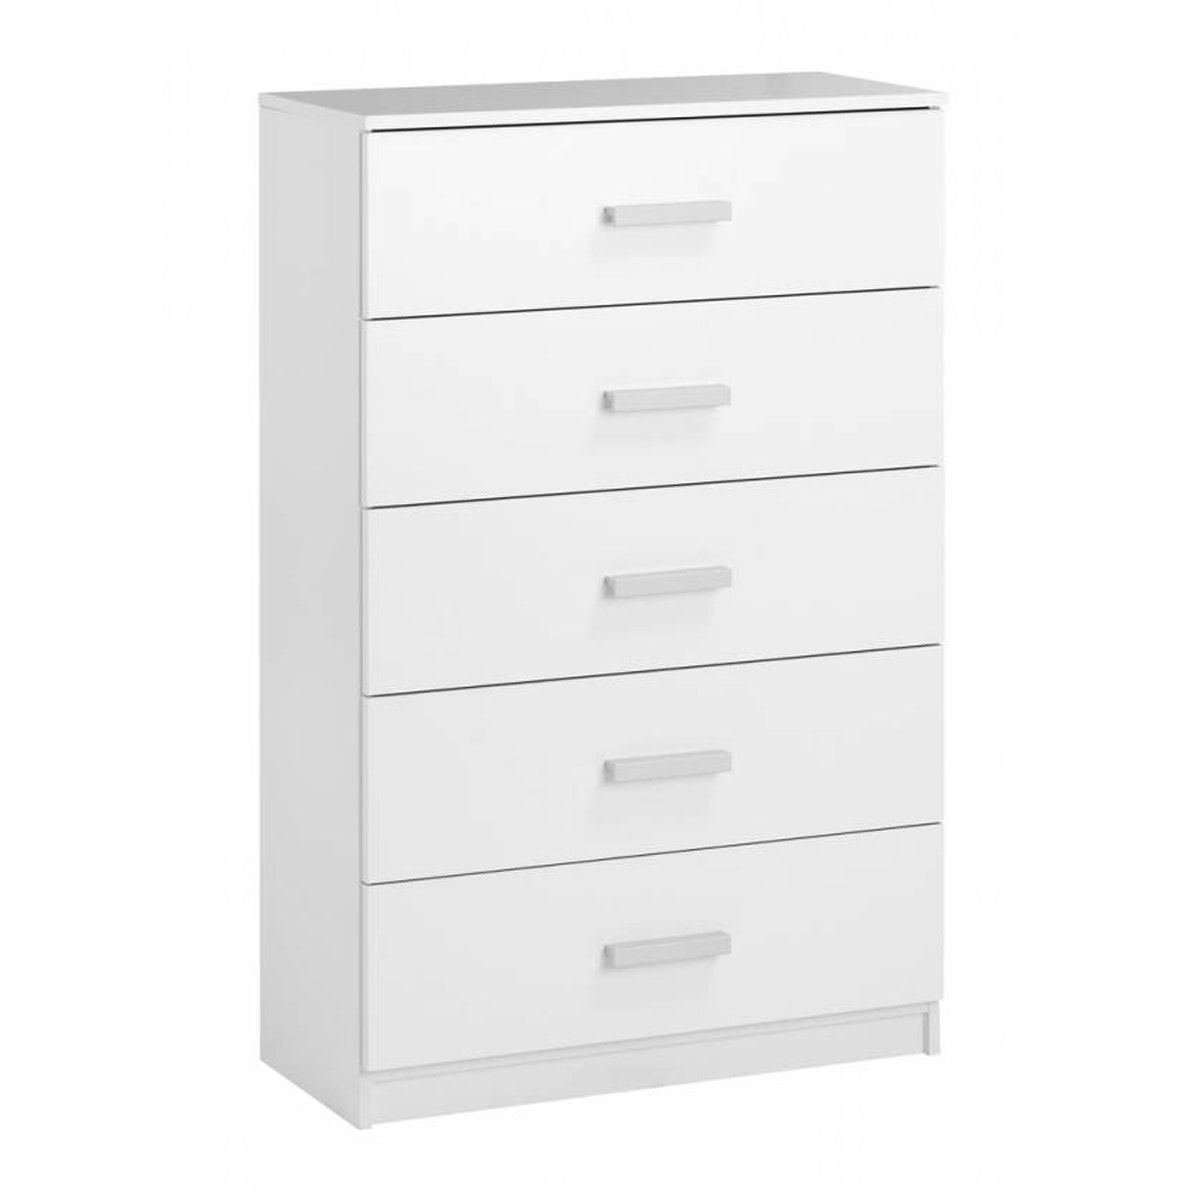 JYSK Chest 5 Drawers Wide Kabdrup 71X35X108CM White